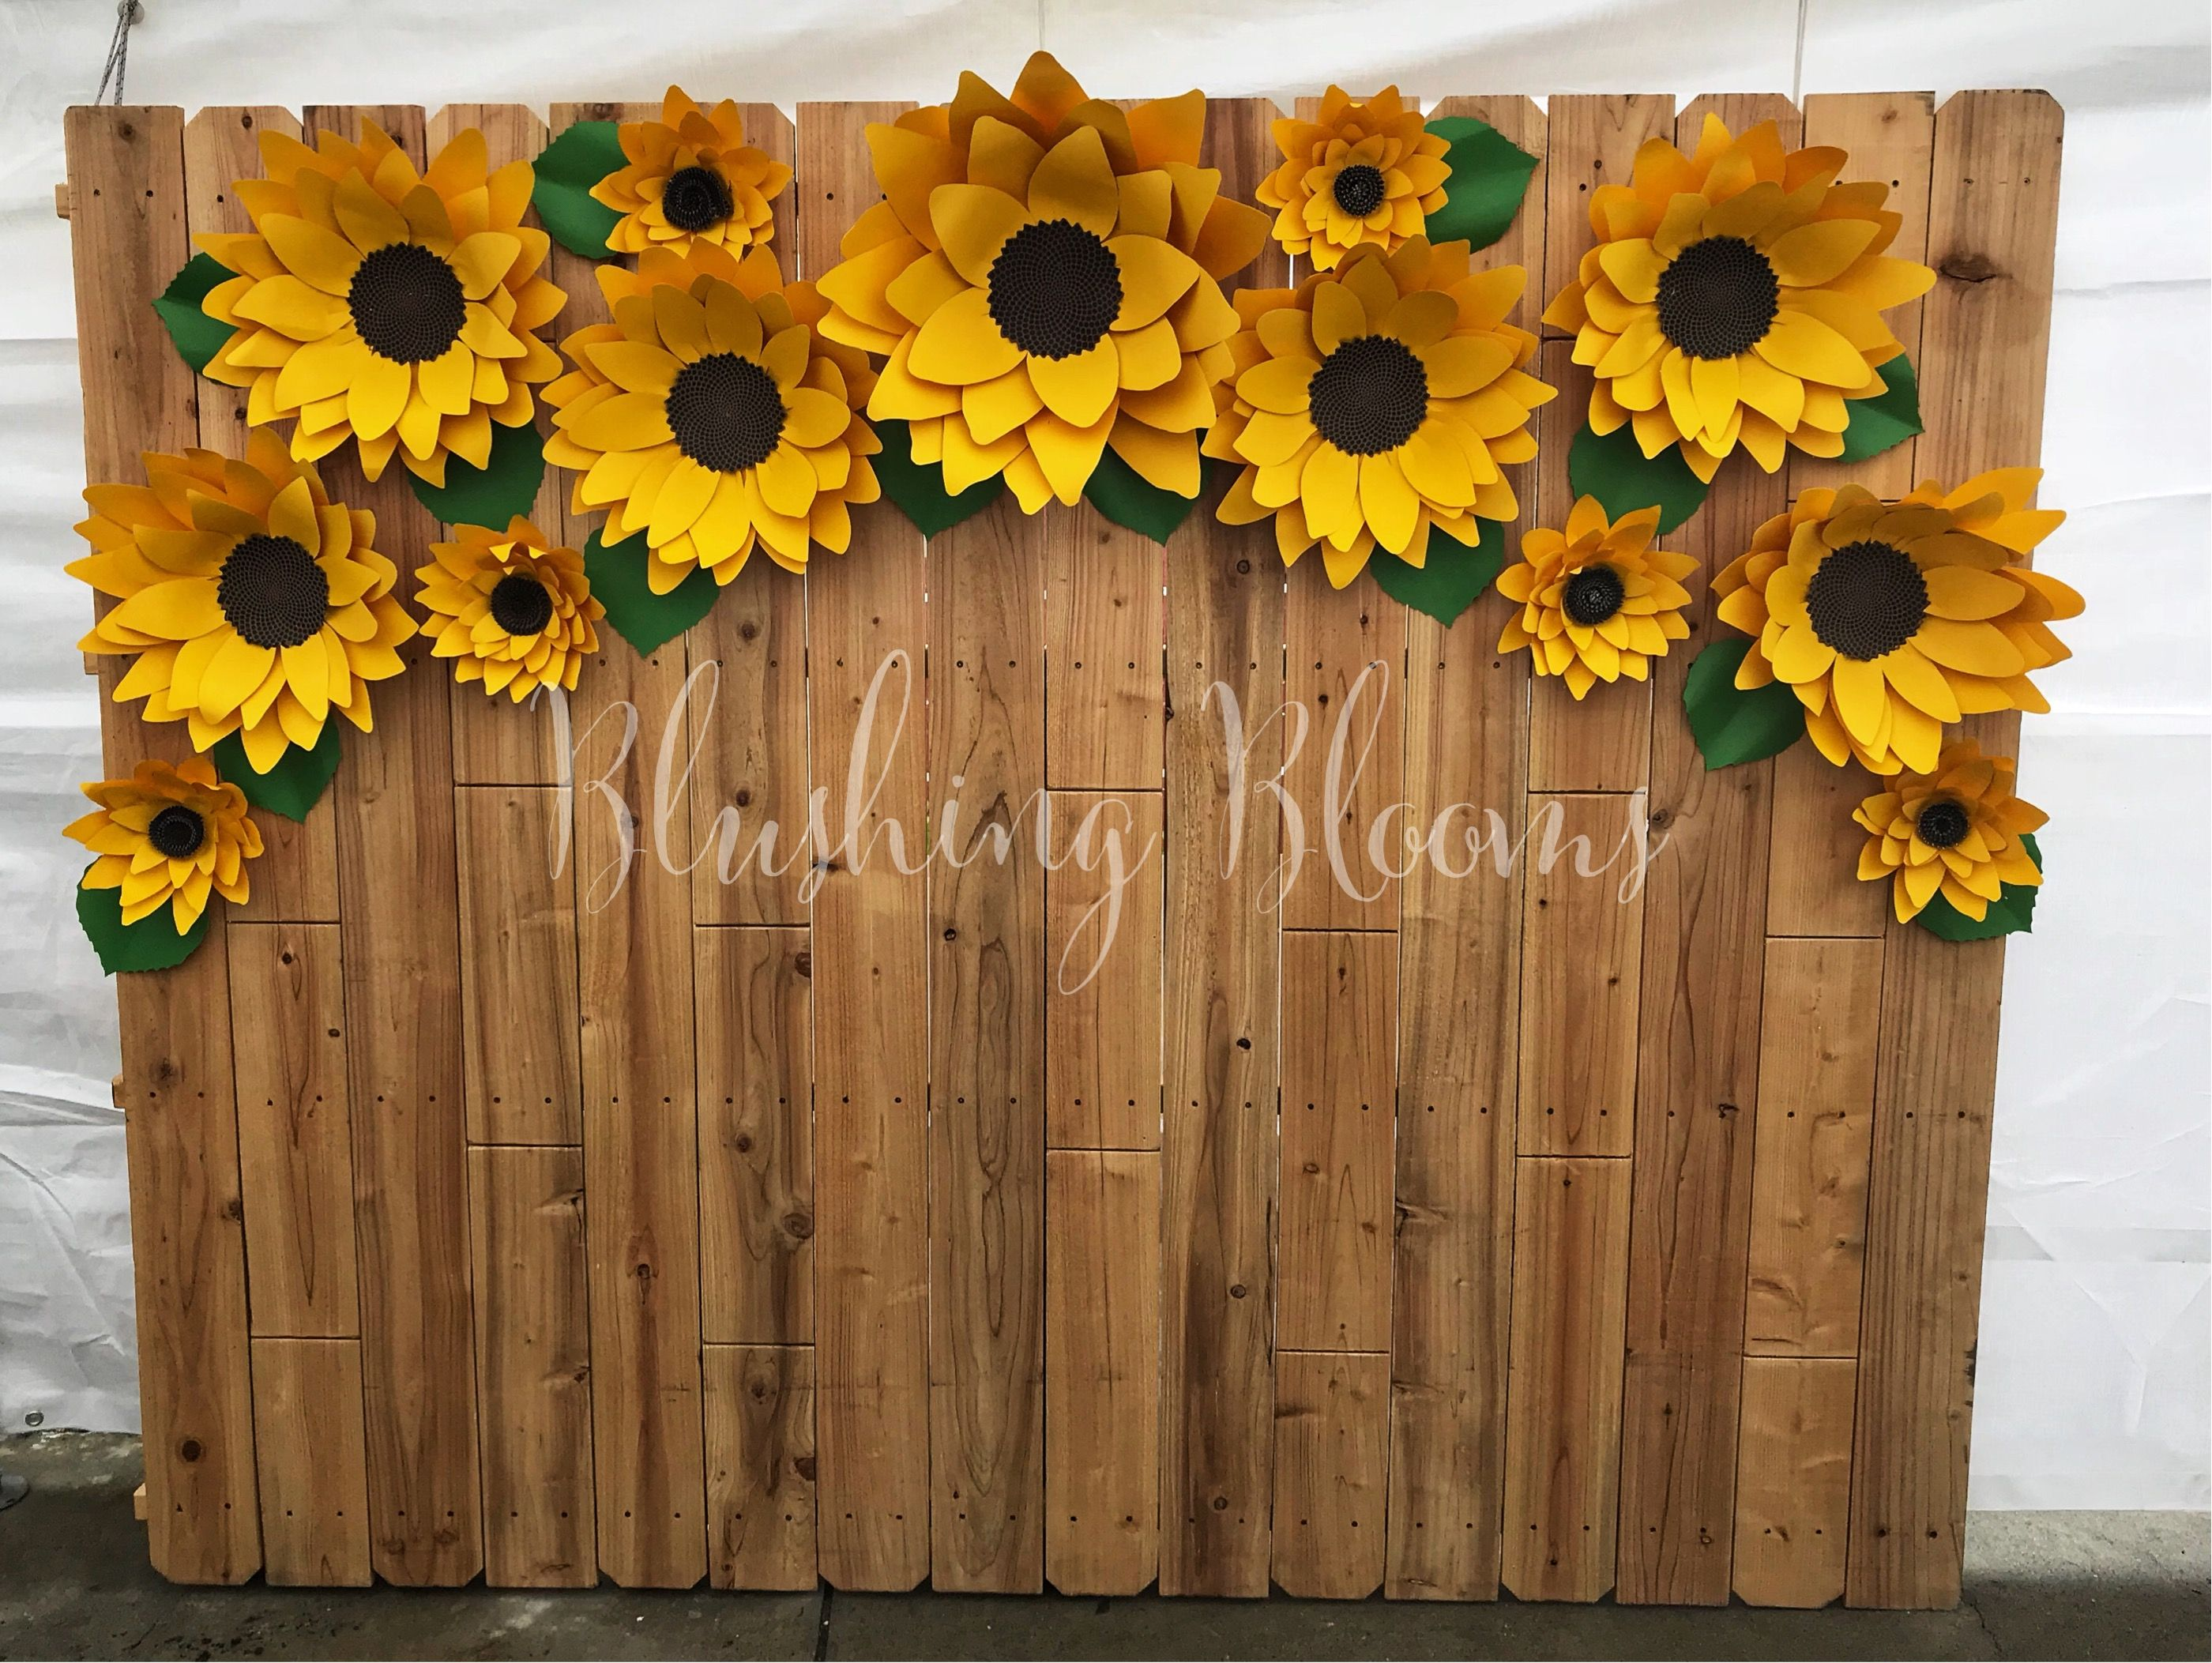 Sunflower paper flowers for a fall theme birthday party